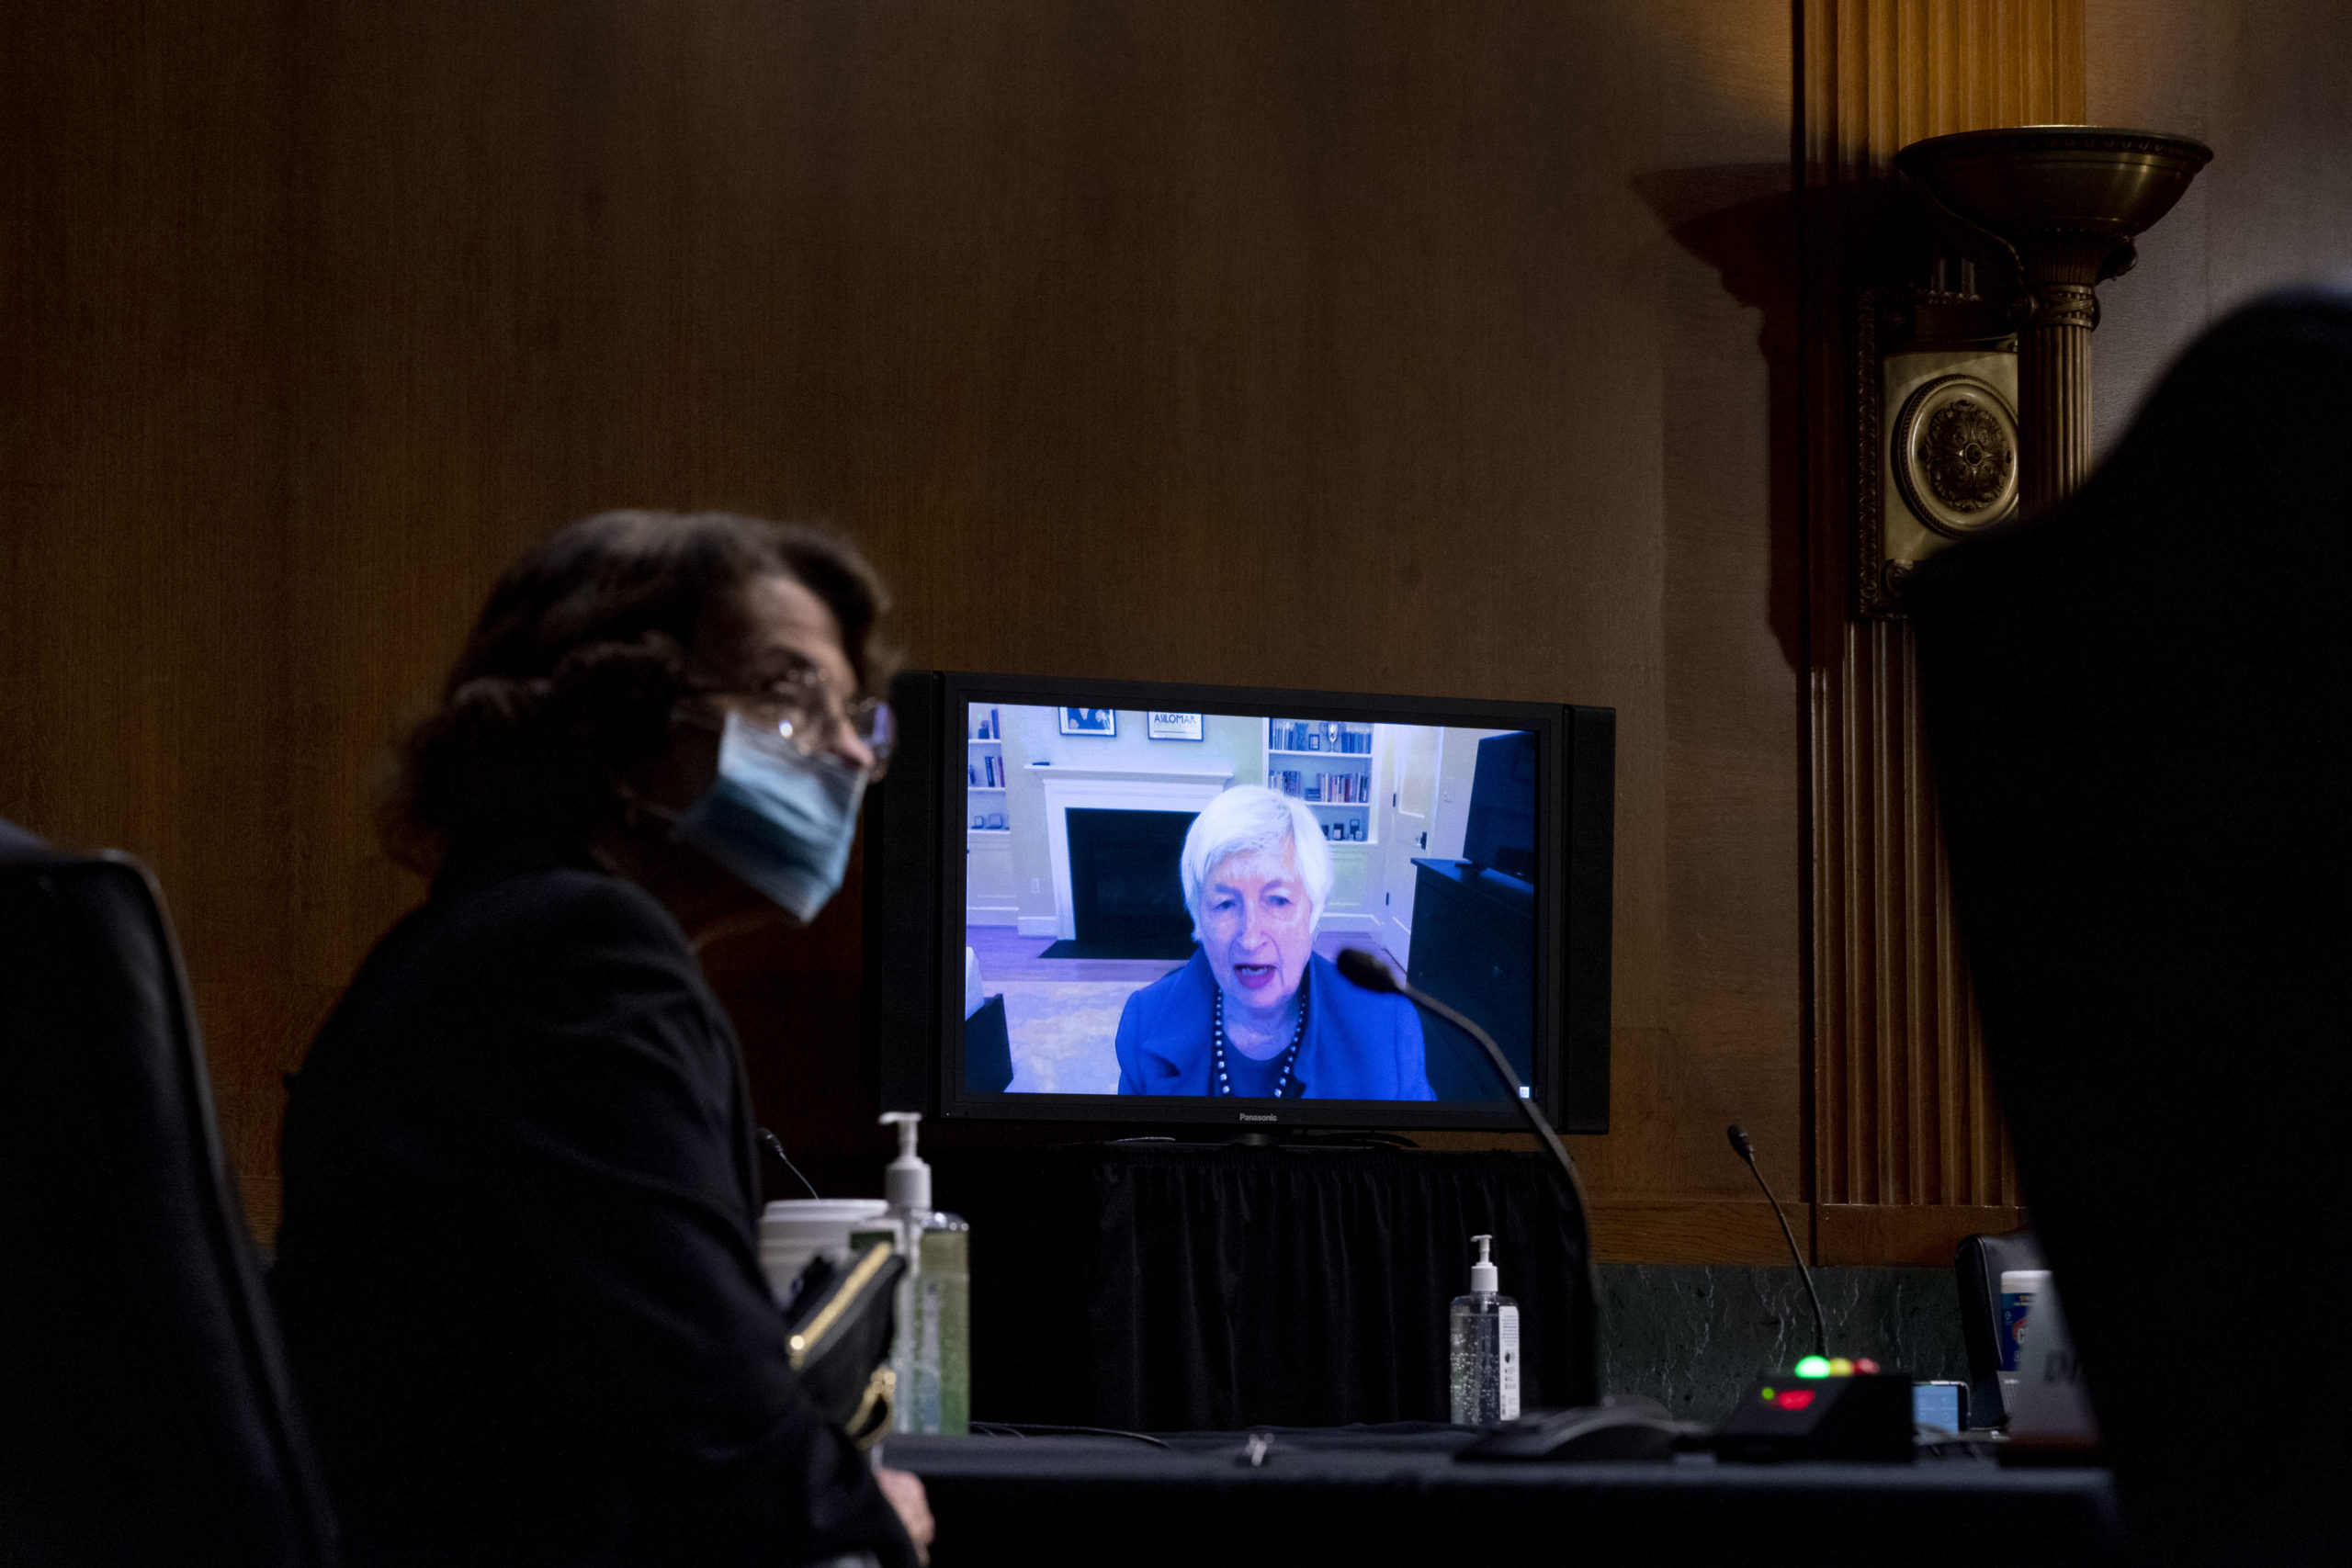 Sen. Dianne Feinstein listens to Janet Yellen give her opening statement via videoconference during a Senate hearing Tuesday. (Andrew Harnik-Pool/Getty Images)